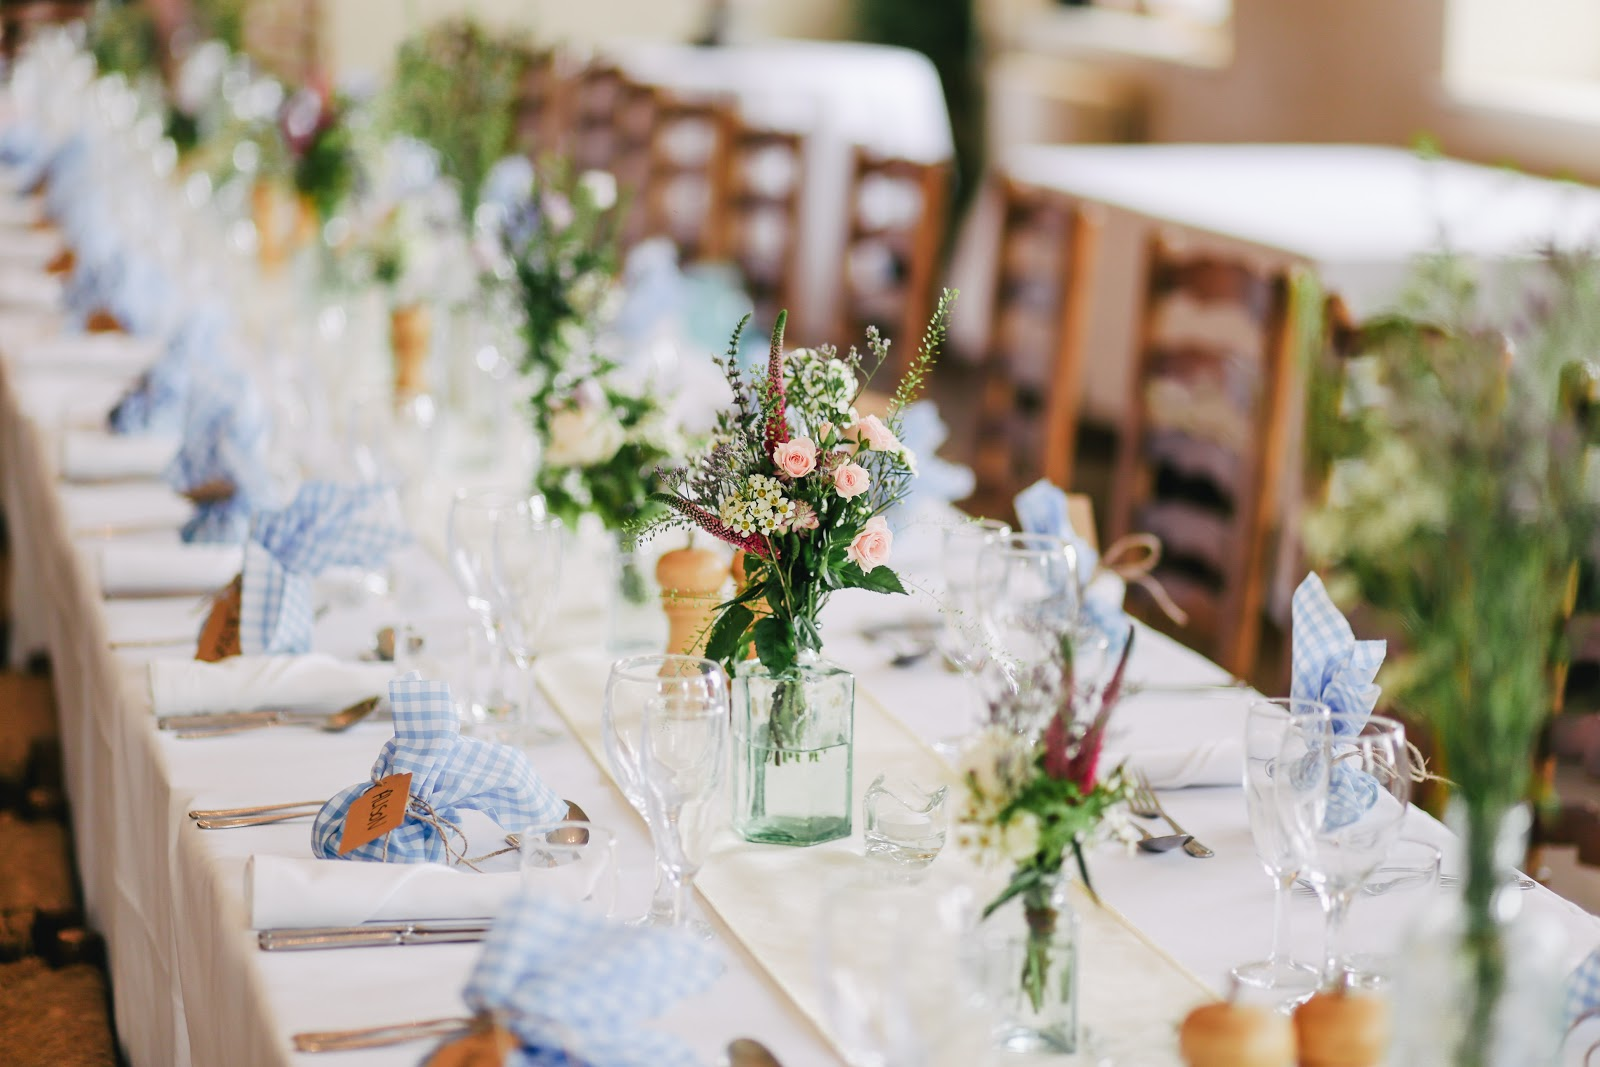 long table with glasses, silverware, and flower centerpieces